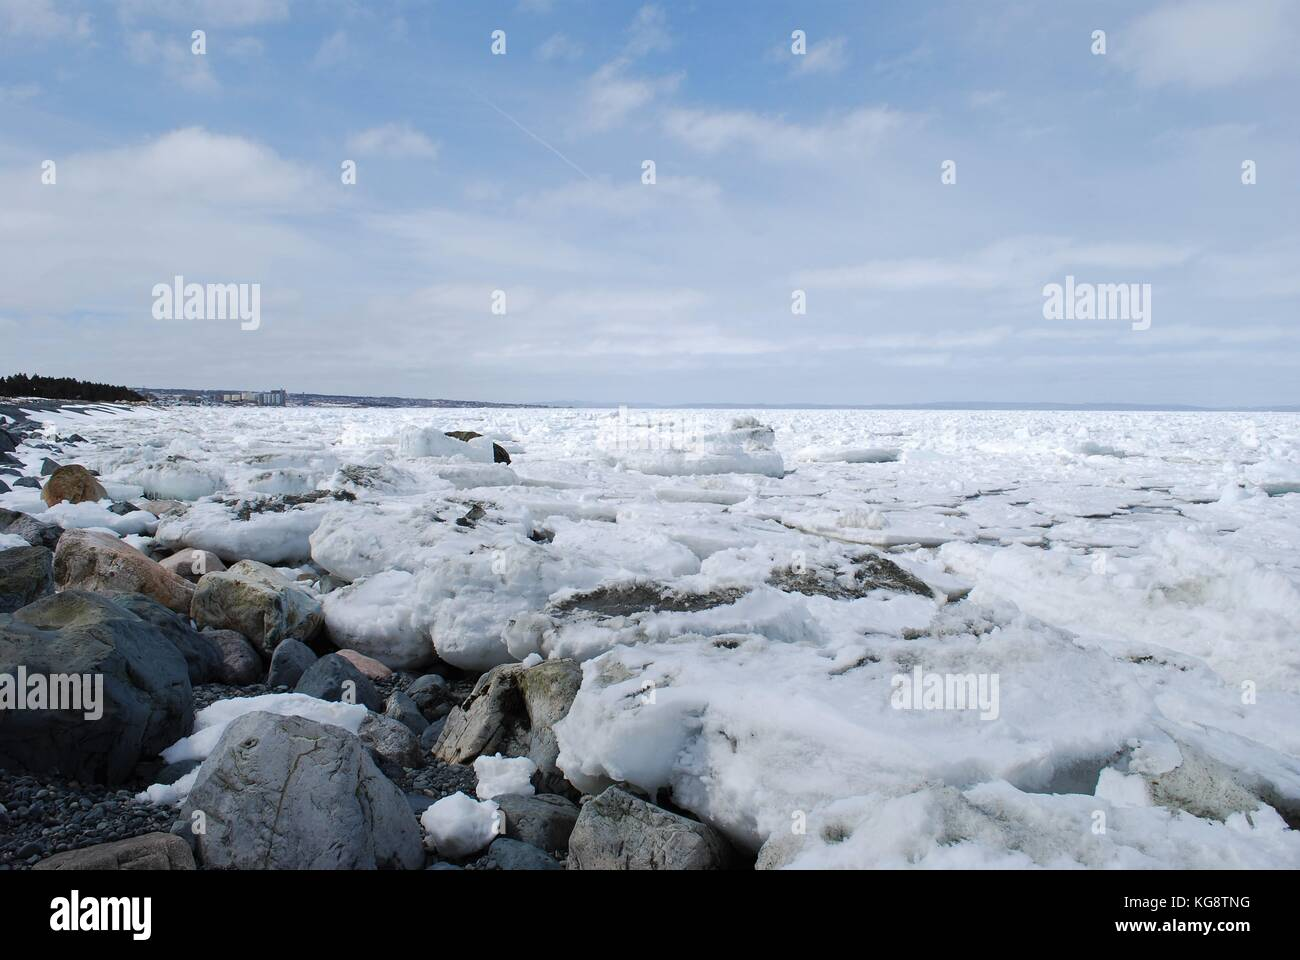 Pack Ice in the bay, Conception Bay South, Newfoundland Labrador - Stock Image